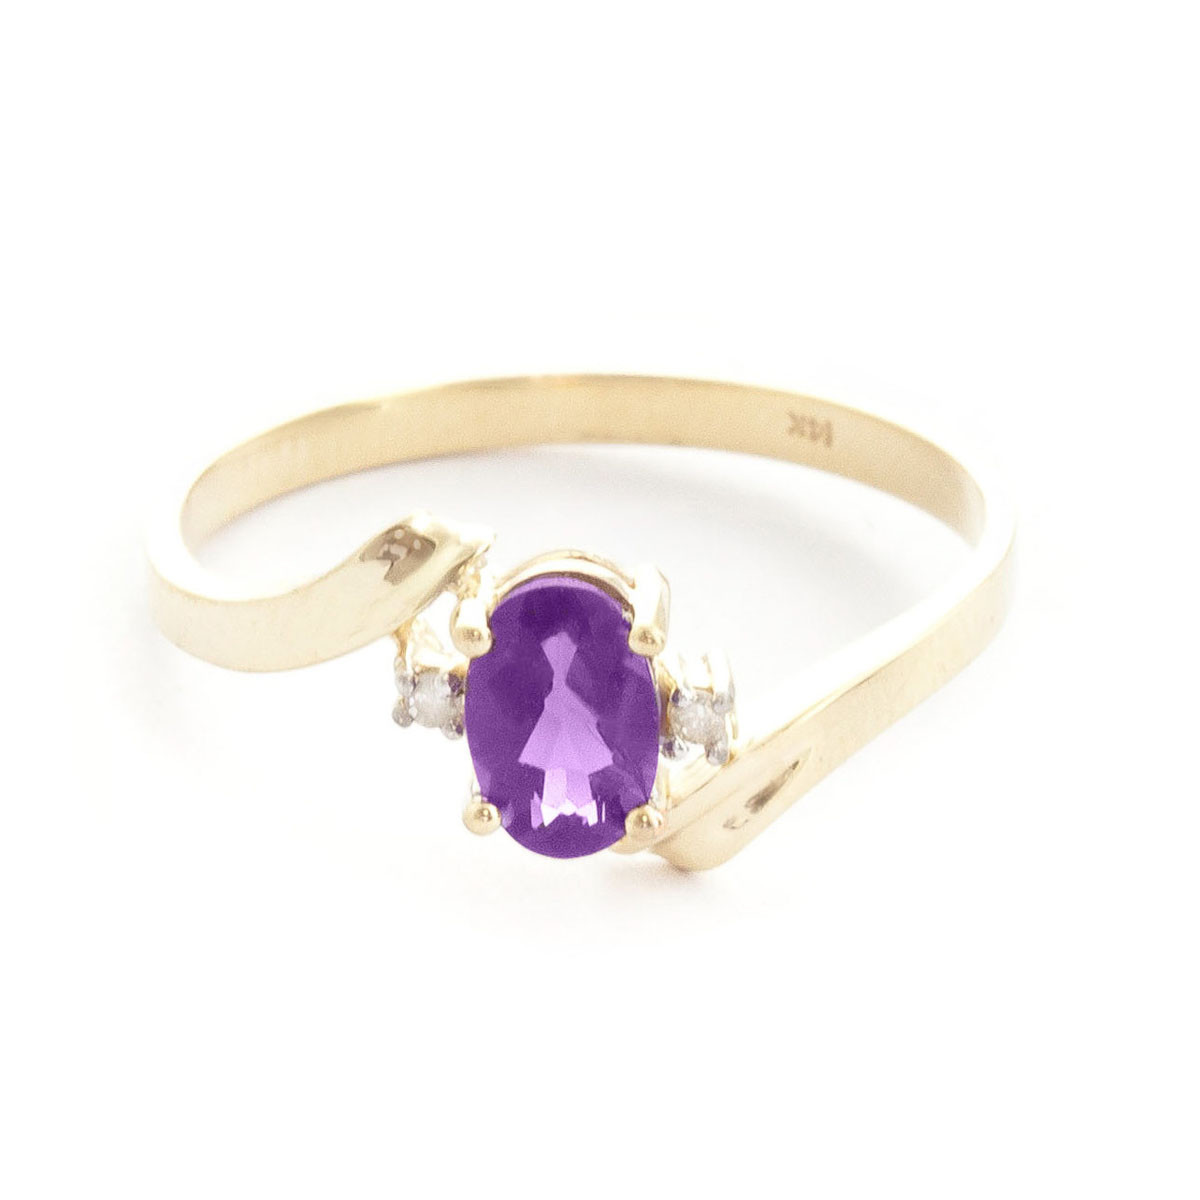 Amethyst & Diamond Embrace Ring in 9ct Gold